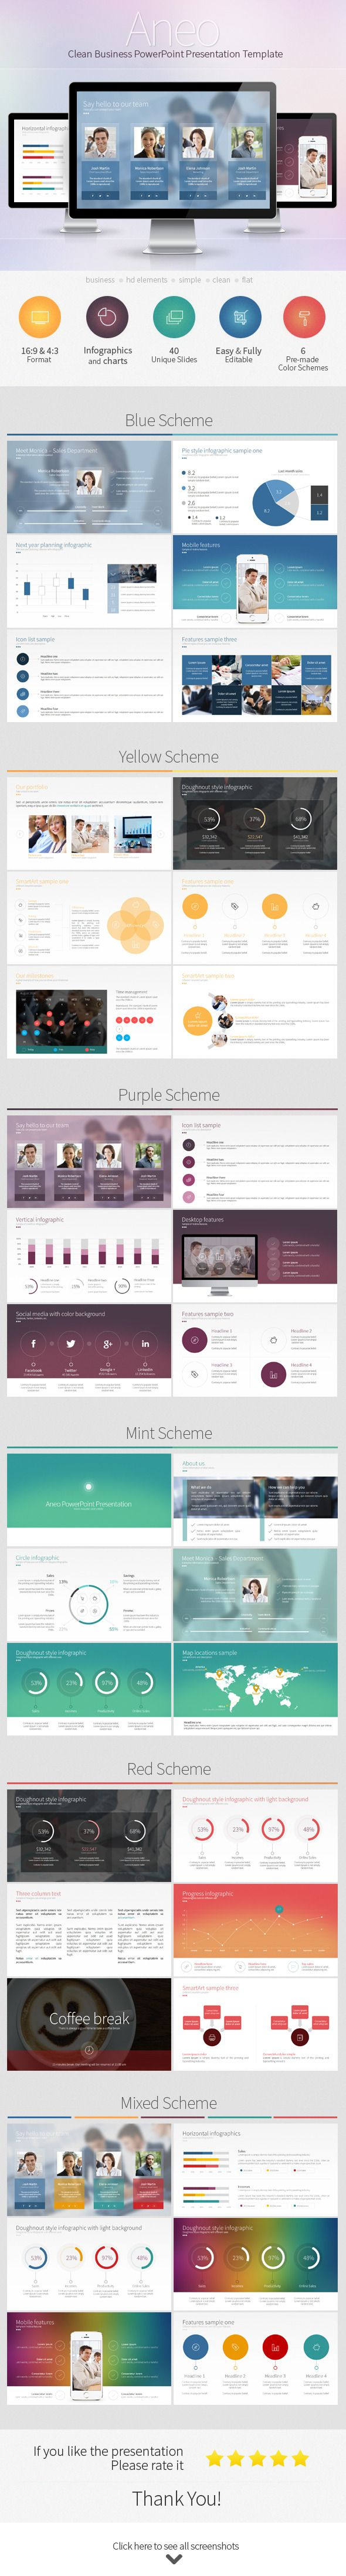 Aneo - Clean Business PowerPoint Presentation Template (Powerpoint Templates) Image 20Preview